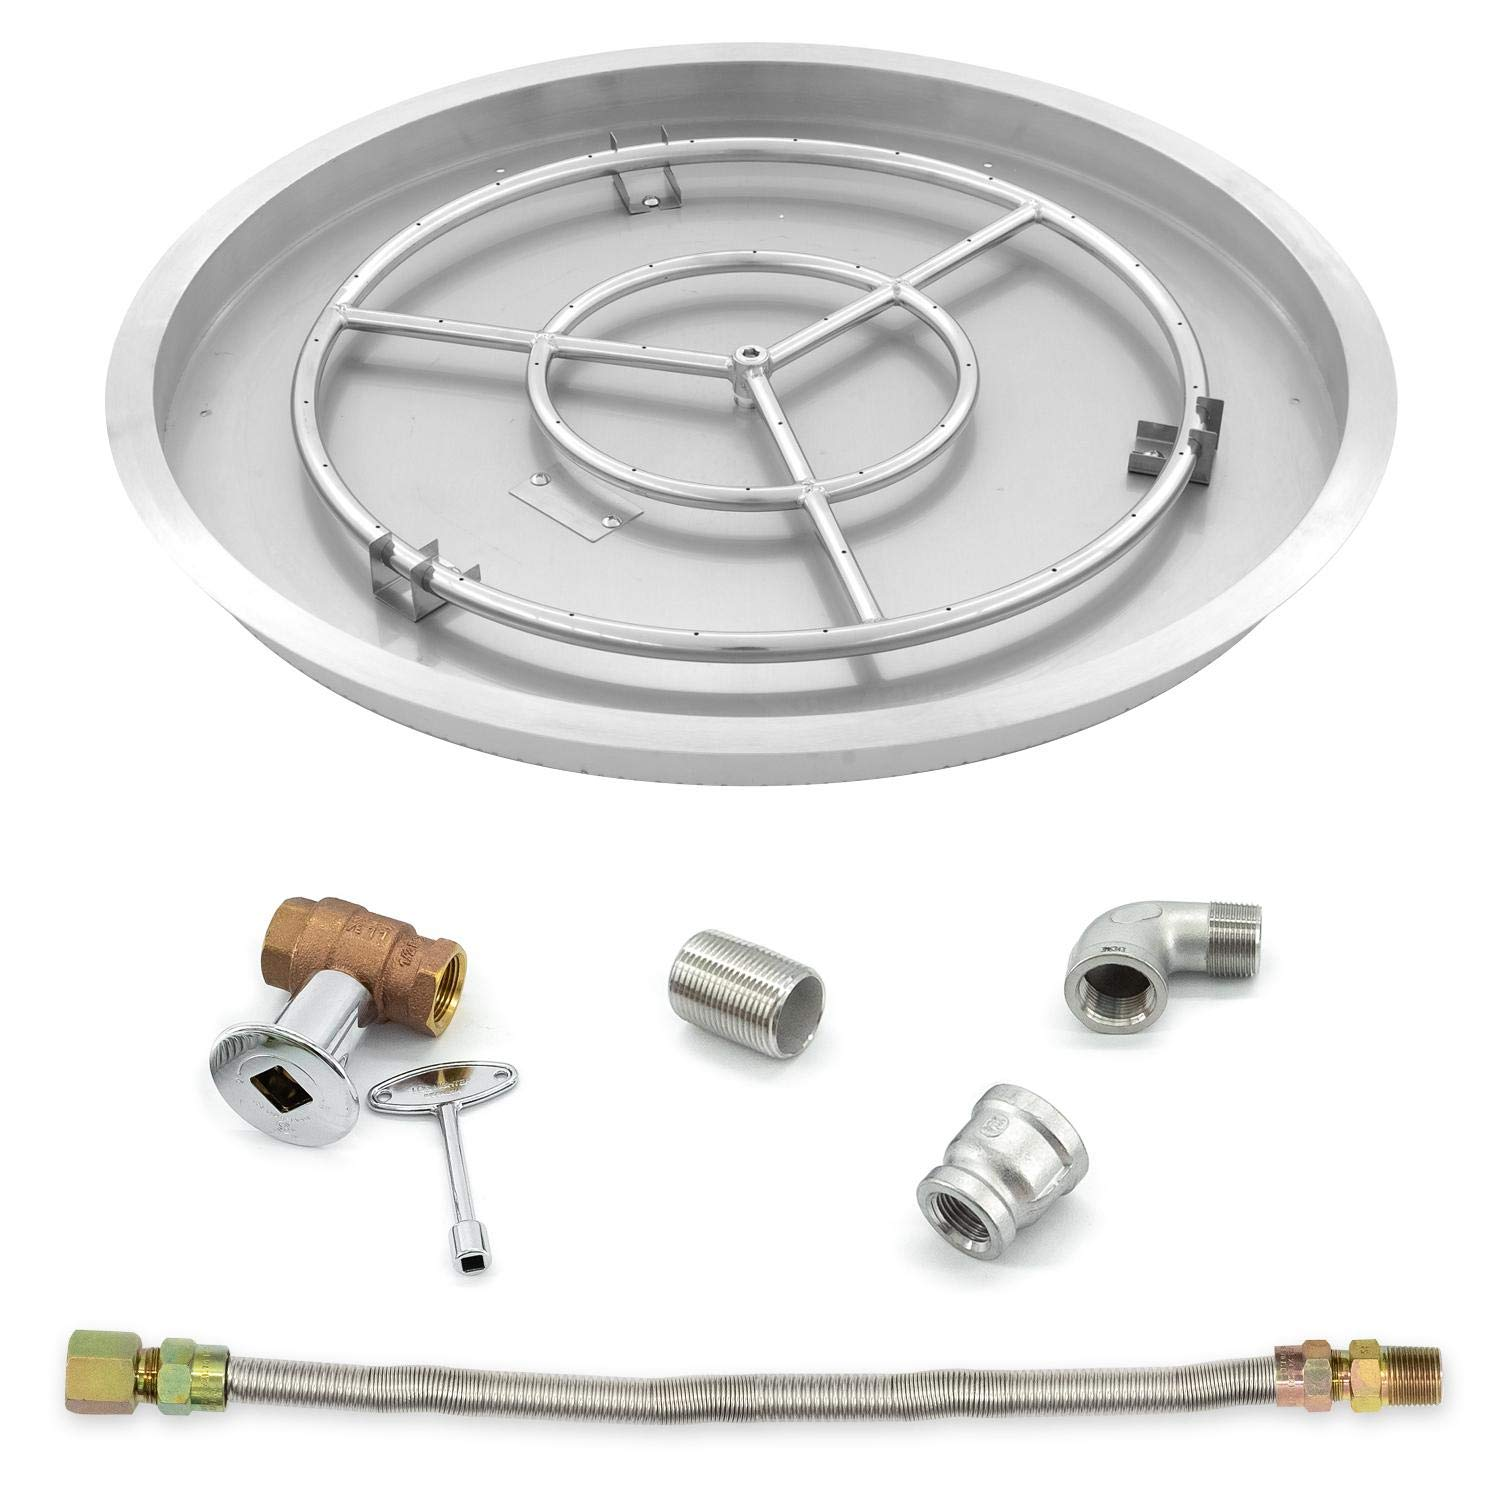 Lakeview Outdoor Designs 31-Inch Round Drop-in Pan W/ 24-Inch Propane Ring Burner & Connection Kit by Lakeview Outdoor Designs